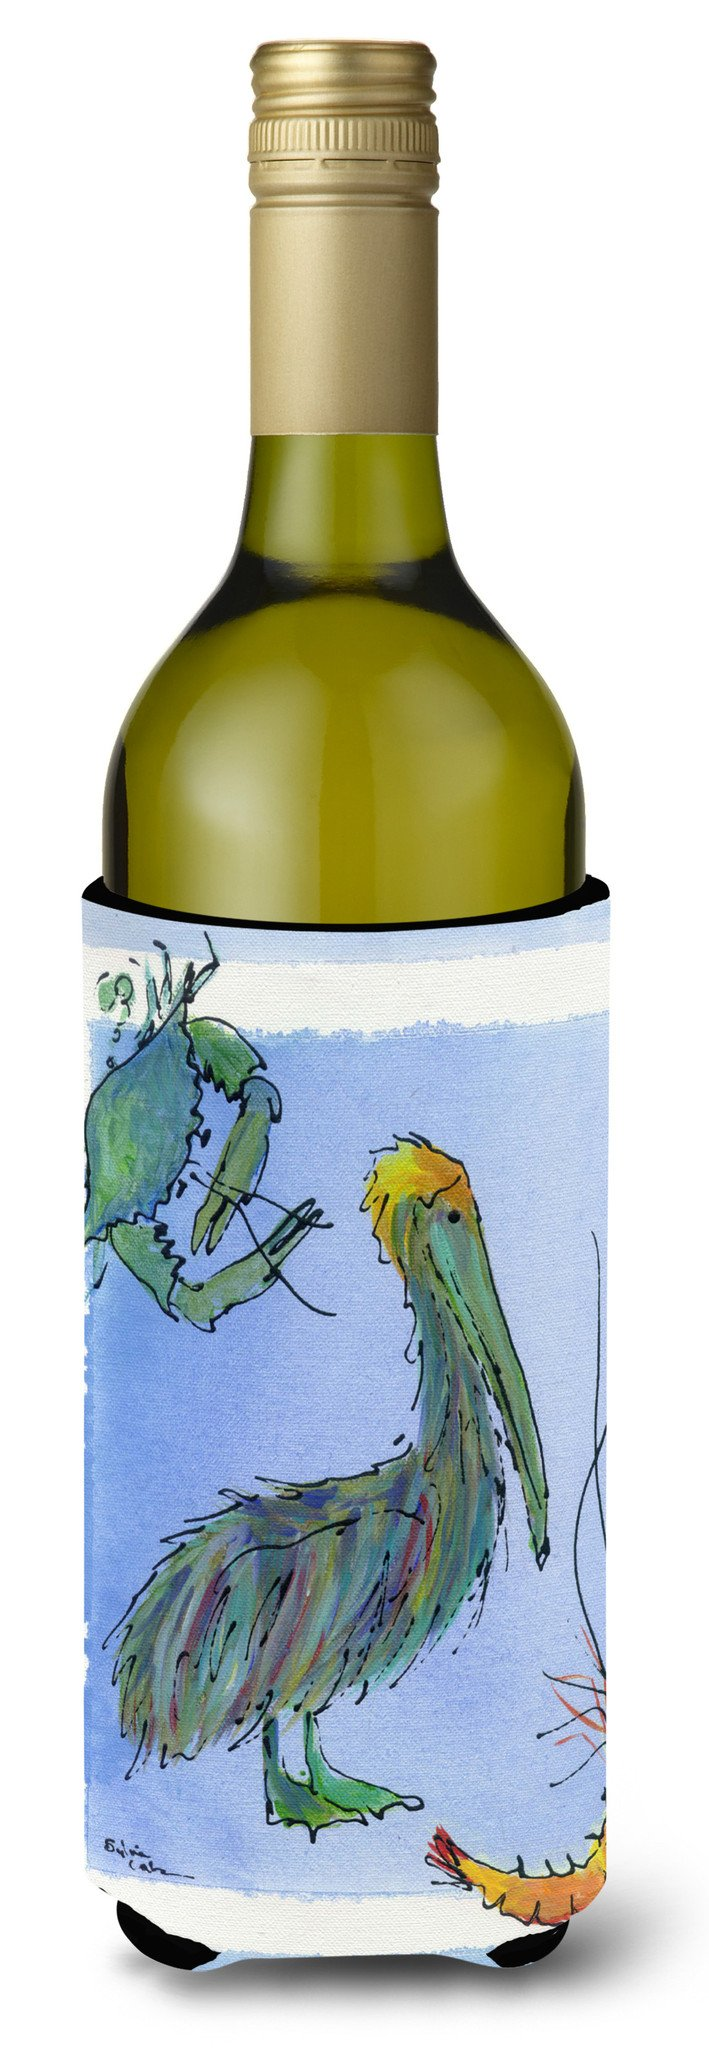 Pelican Shrimp and Crab Wine Bottle Beverage Insulator Beverage Insulator Hugger by Caroline's Treasures